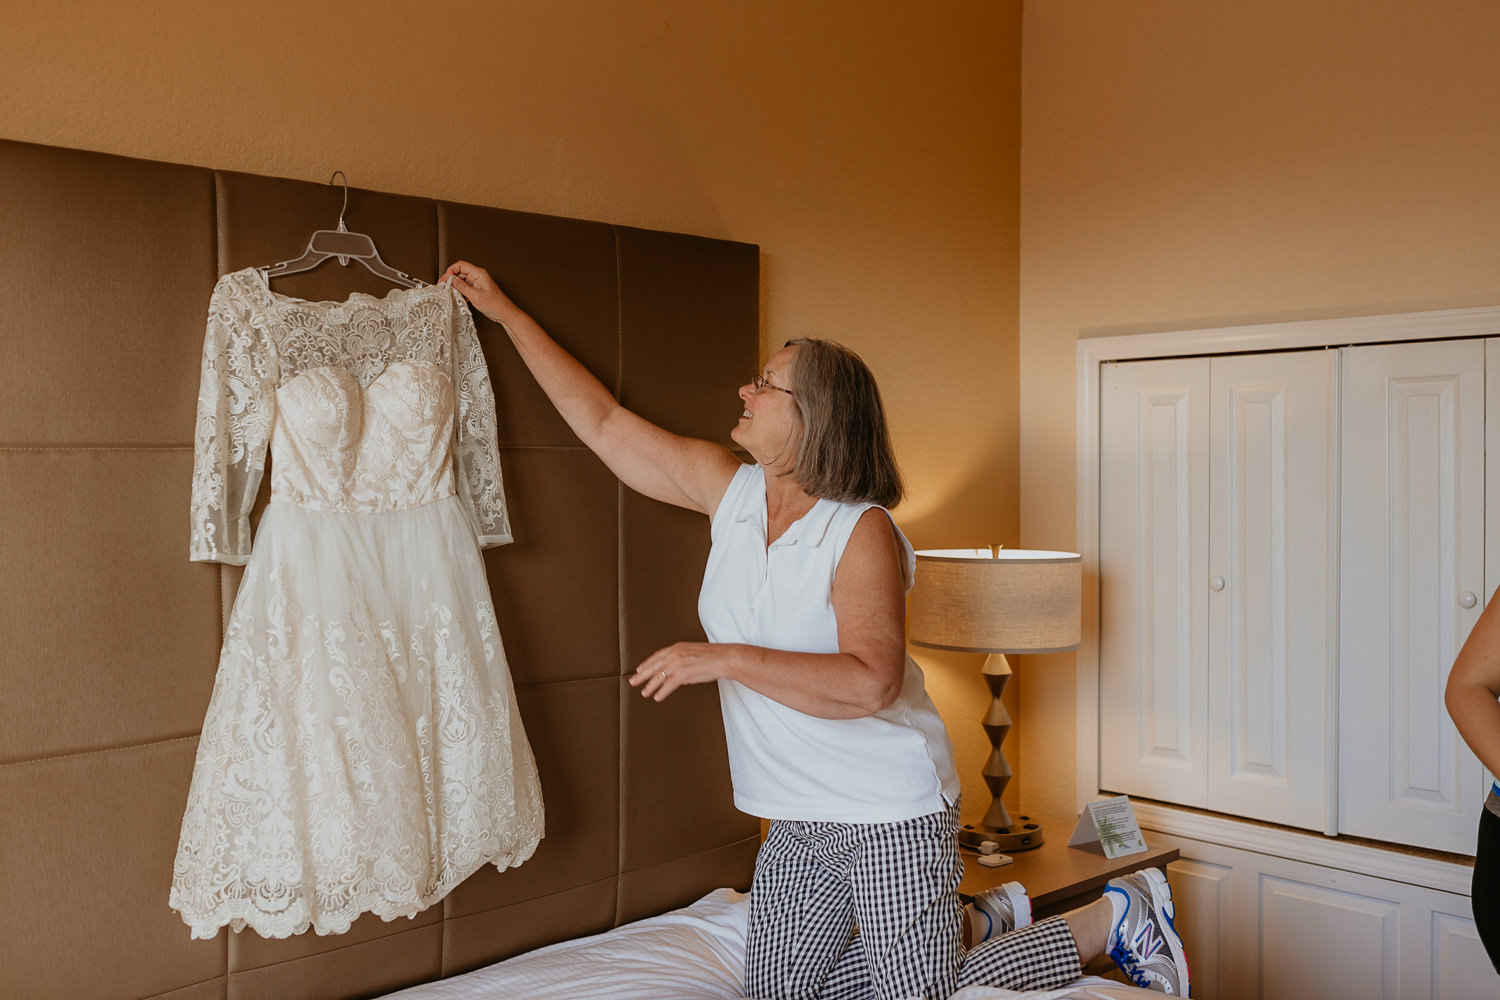 mother of the bride grabbing wedding dress from bed frame